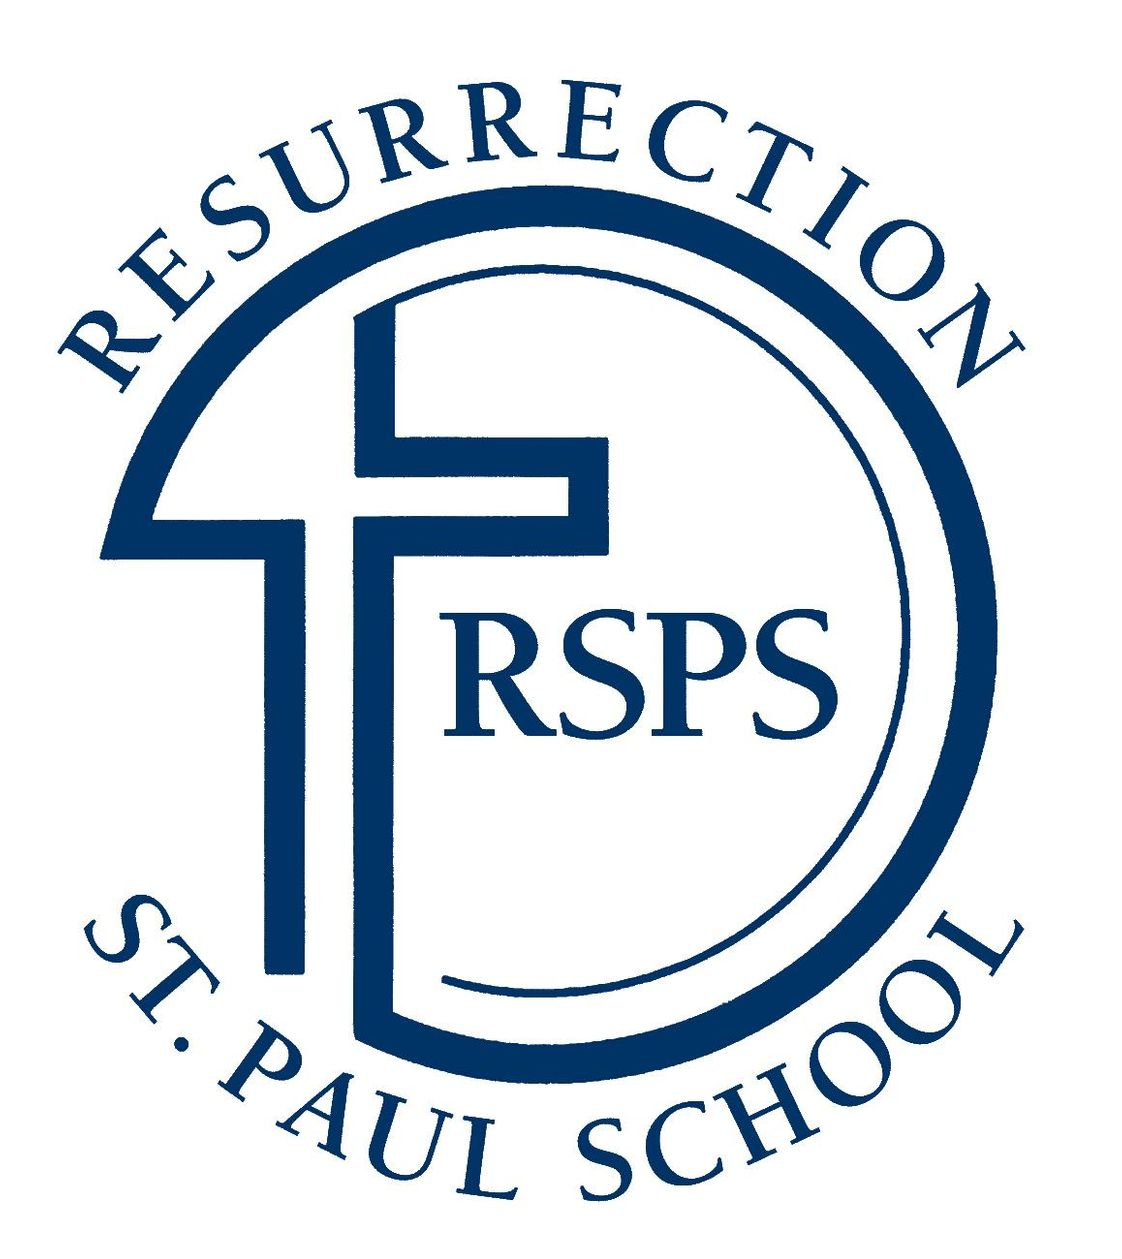 Resurrection St Paul School Photo #1